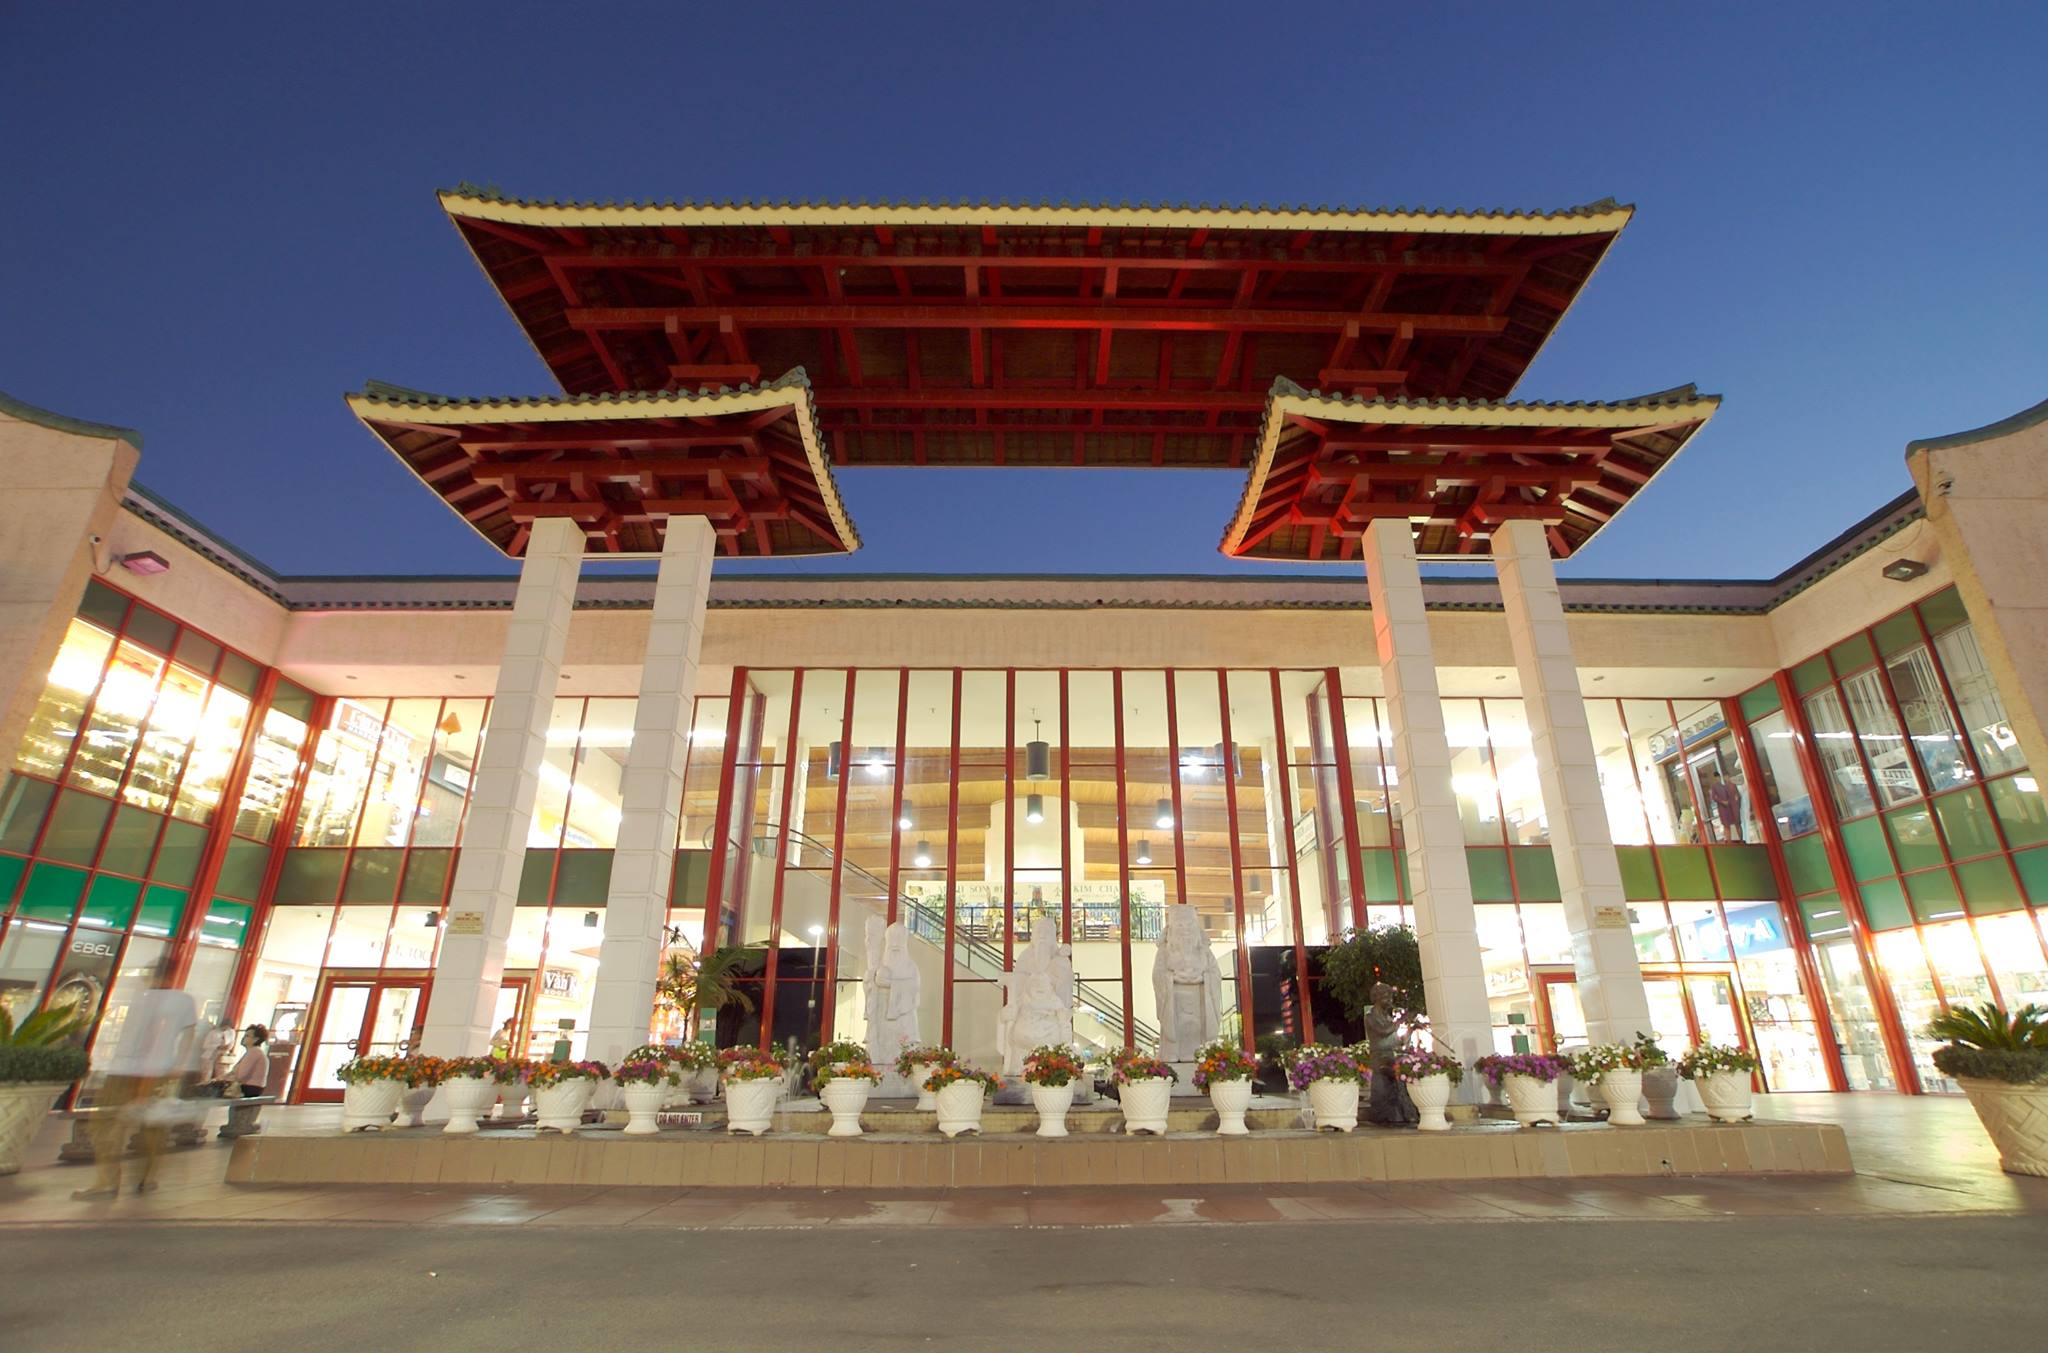 Asian Garden Mall | Sparkoc - The Happening Place For Throughout Buena Park School District Holidays